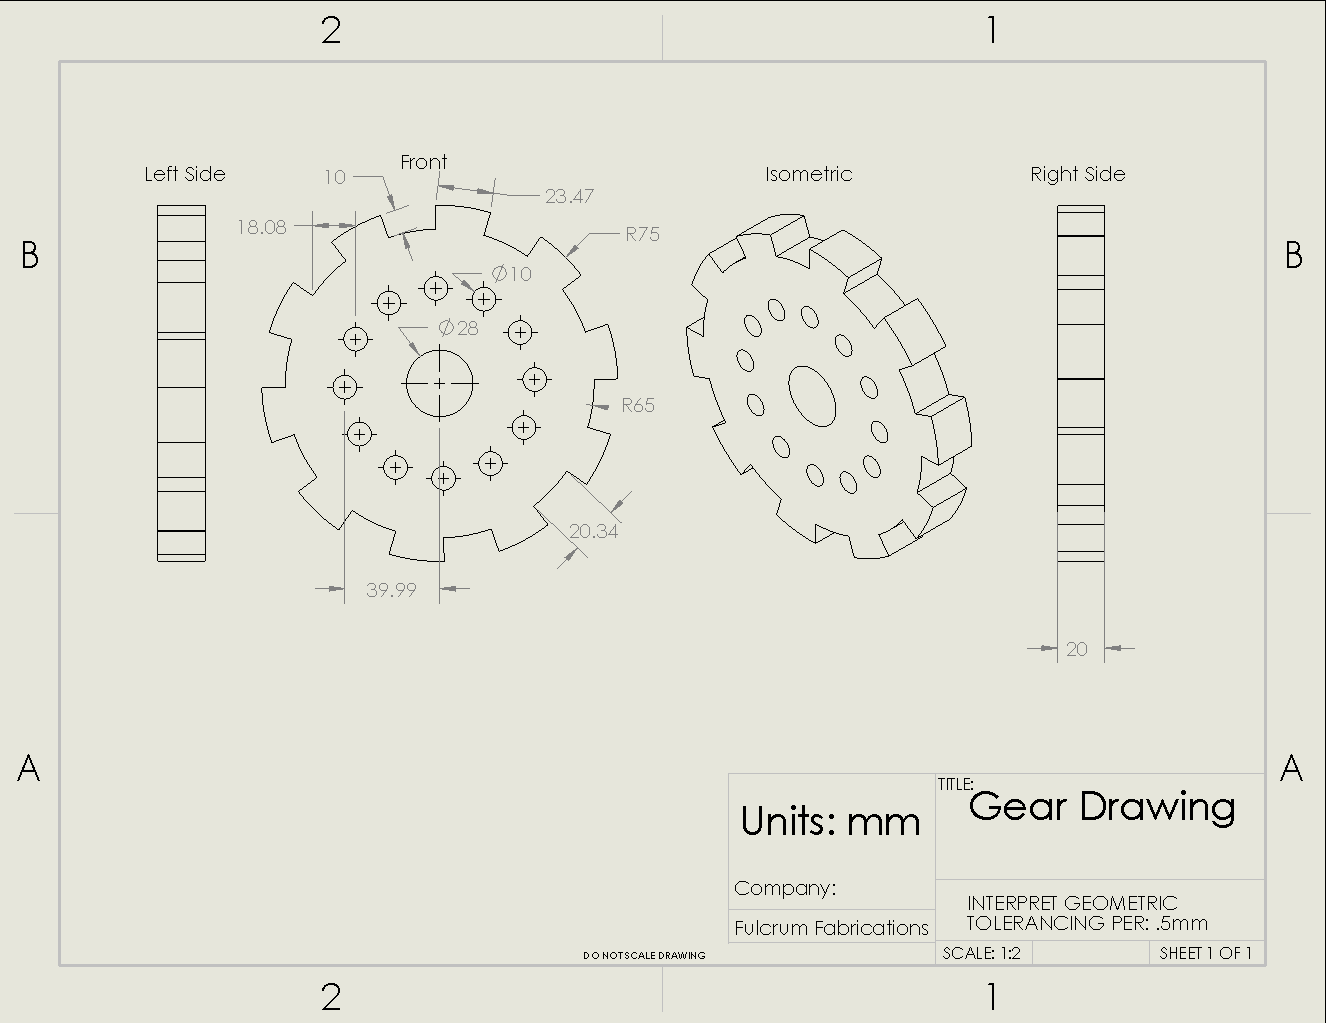 Picture of Gear Drawing